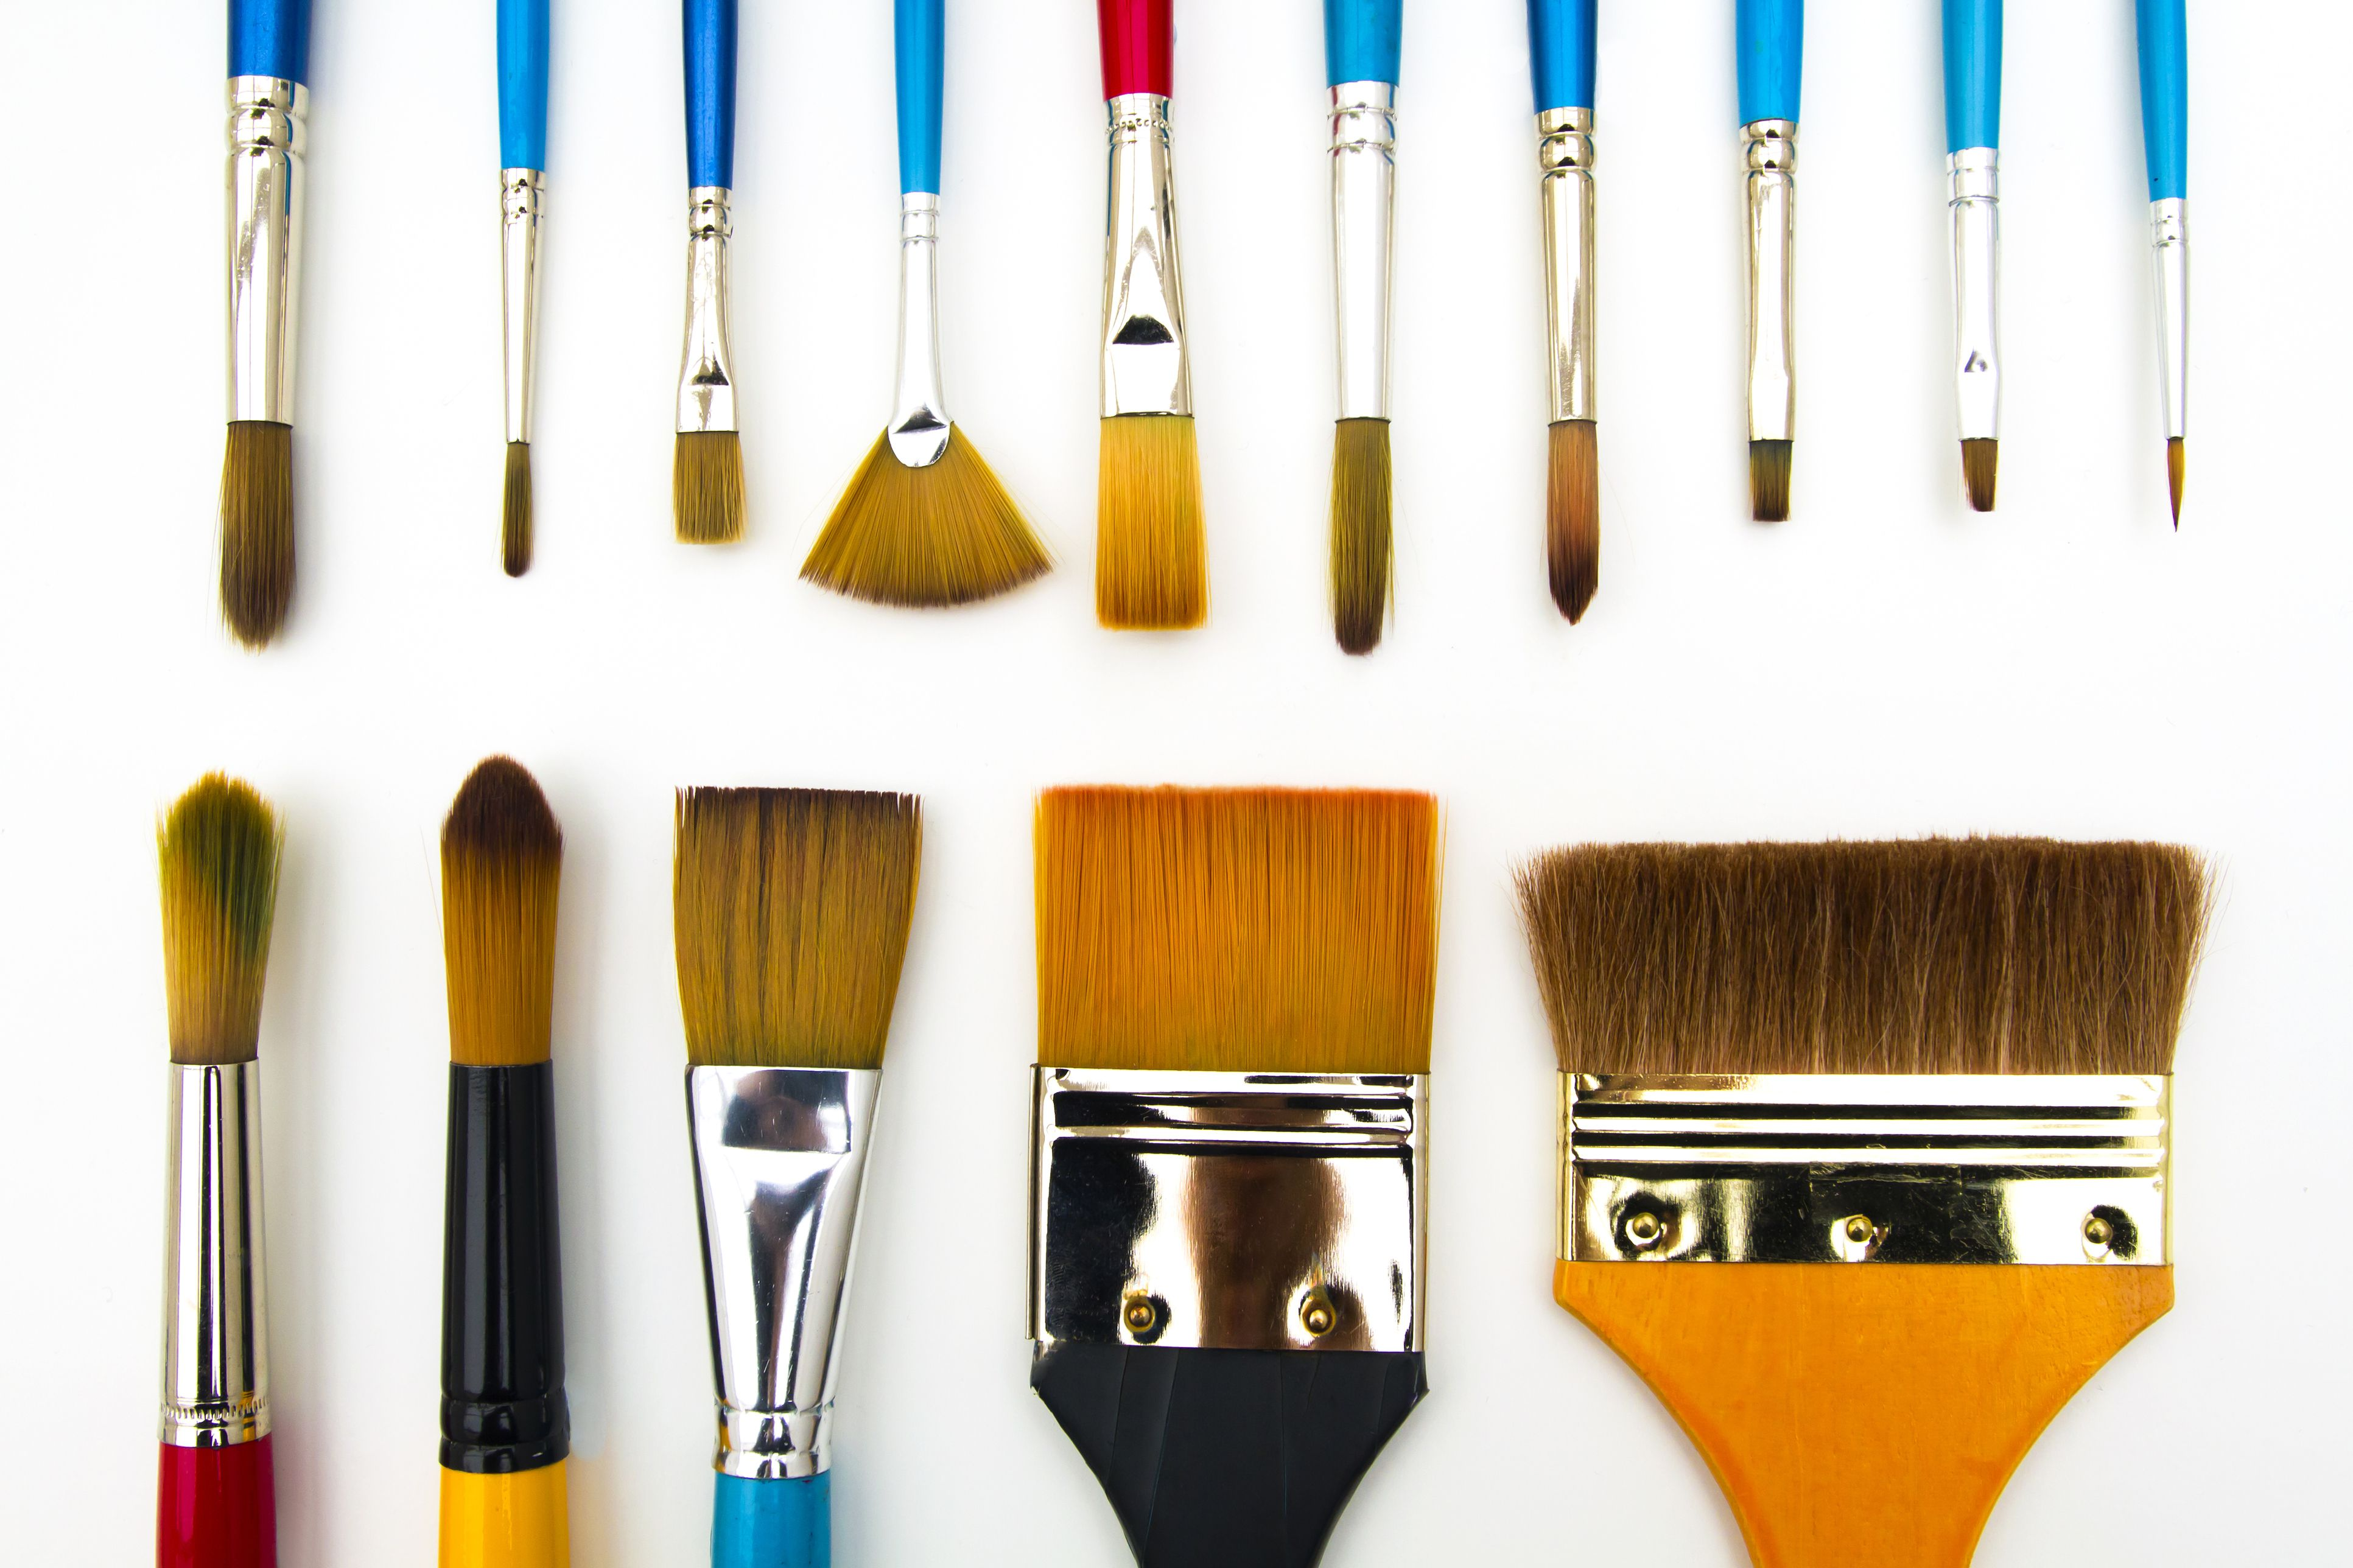 Learn More About Art Paintbrushes